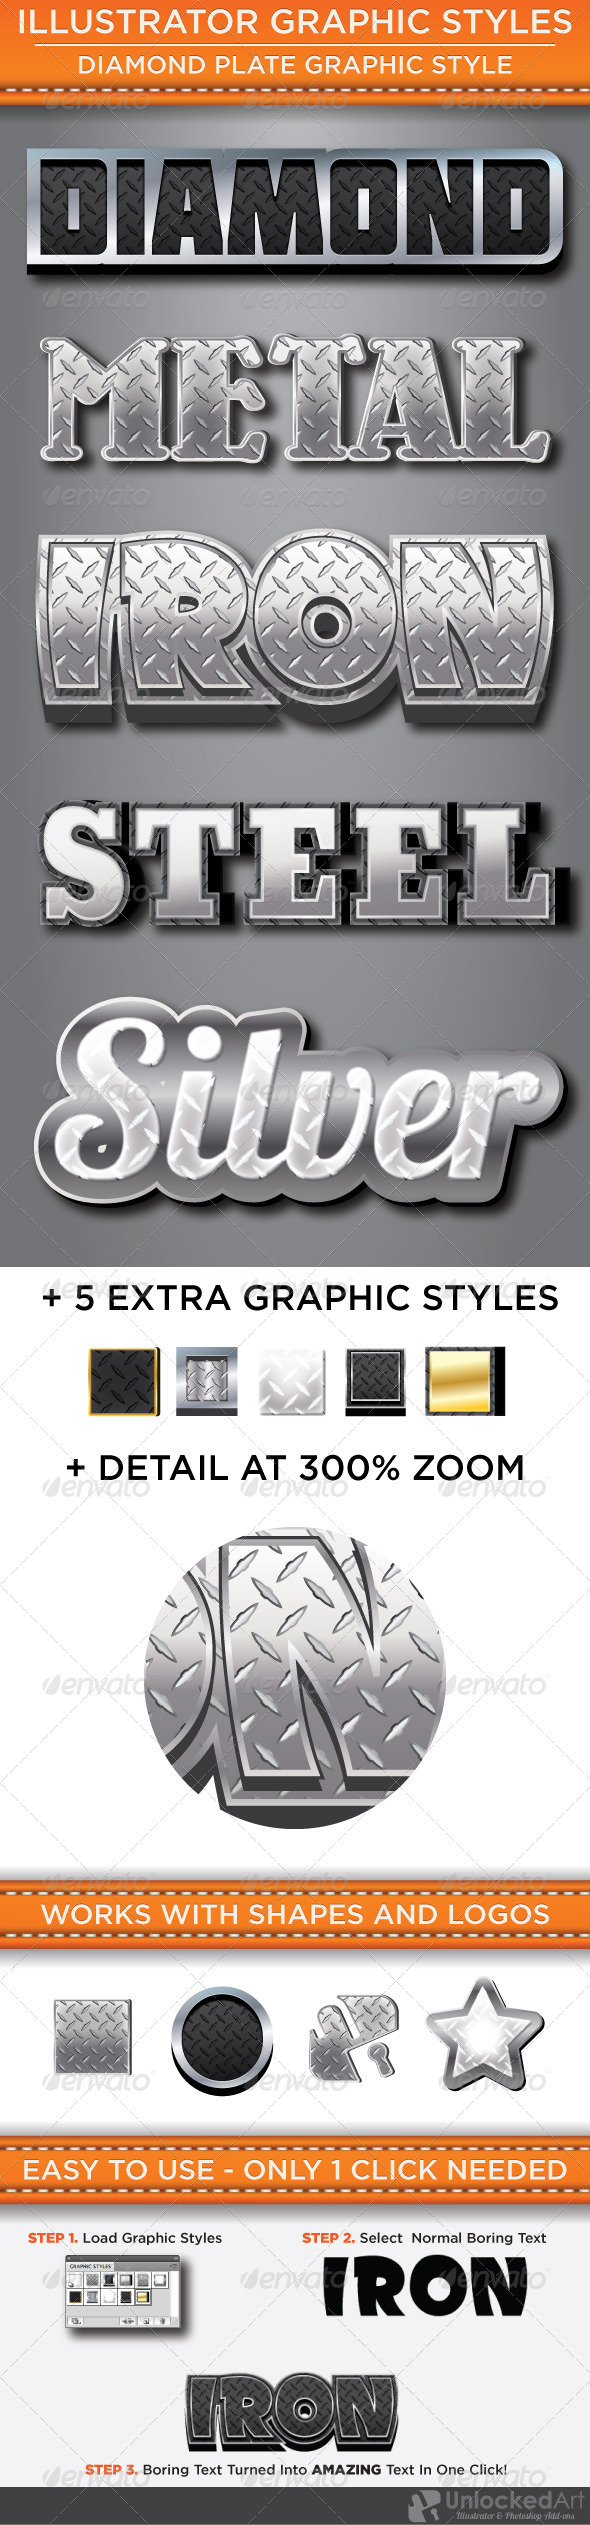 Diamond Plate Graphic Styles - Styles Illustrator